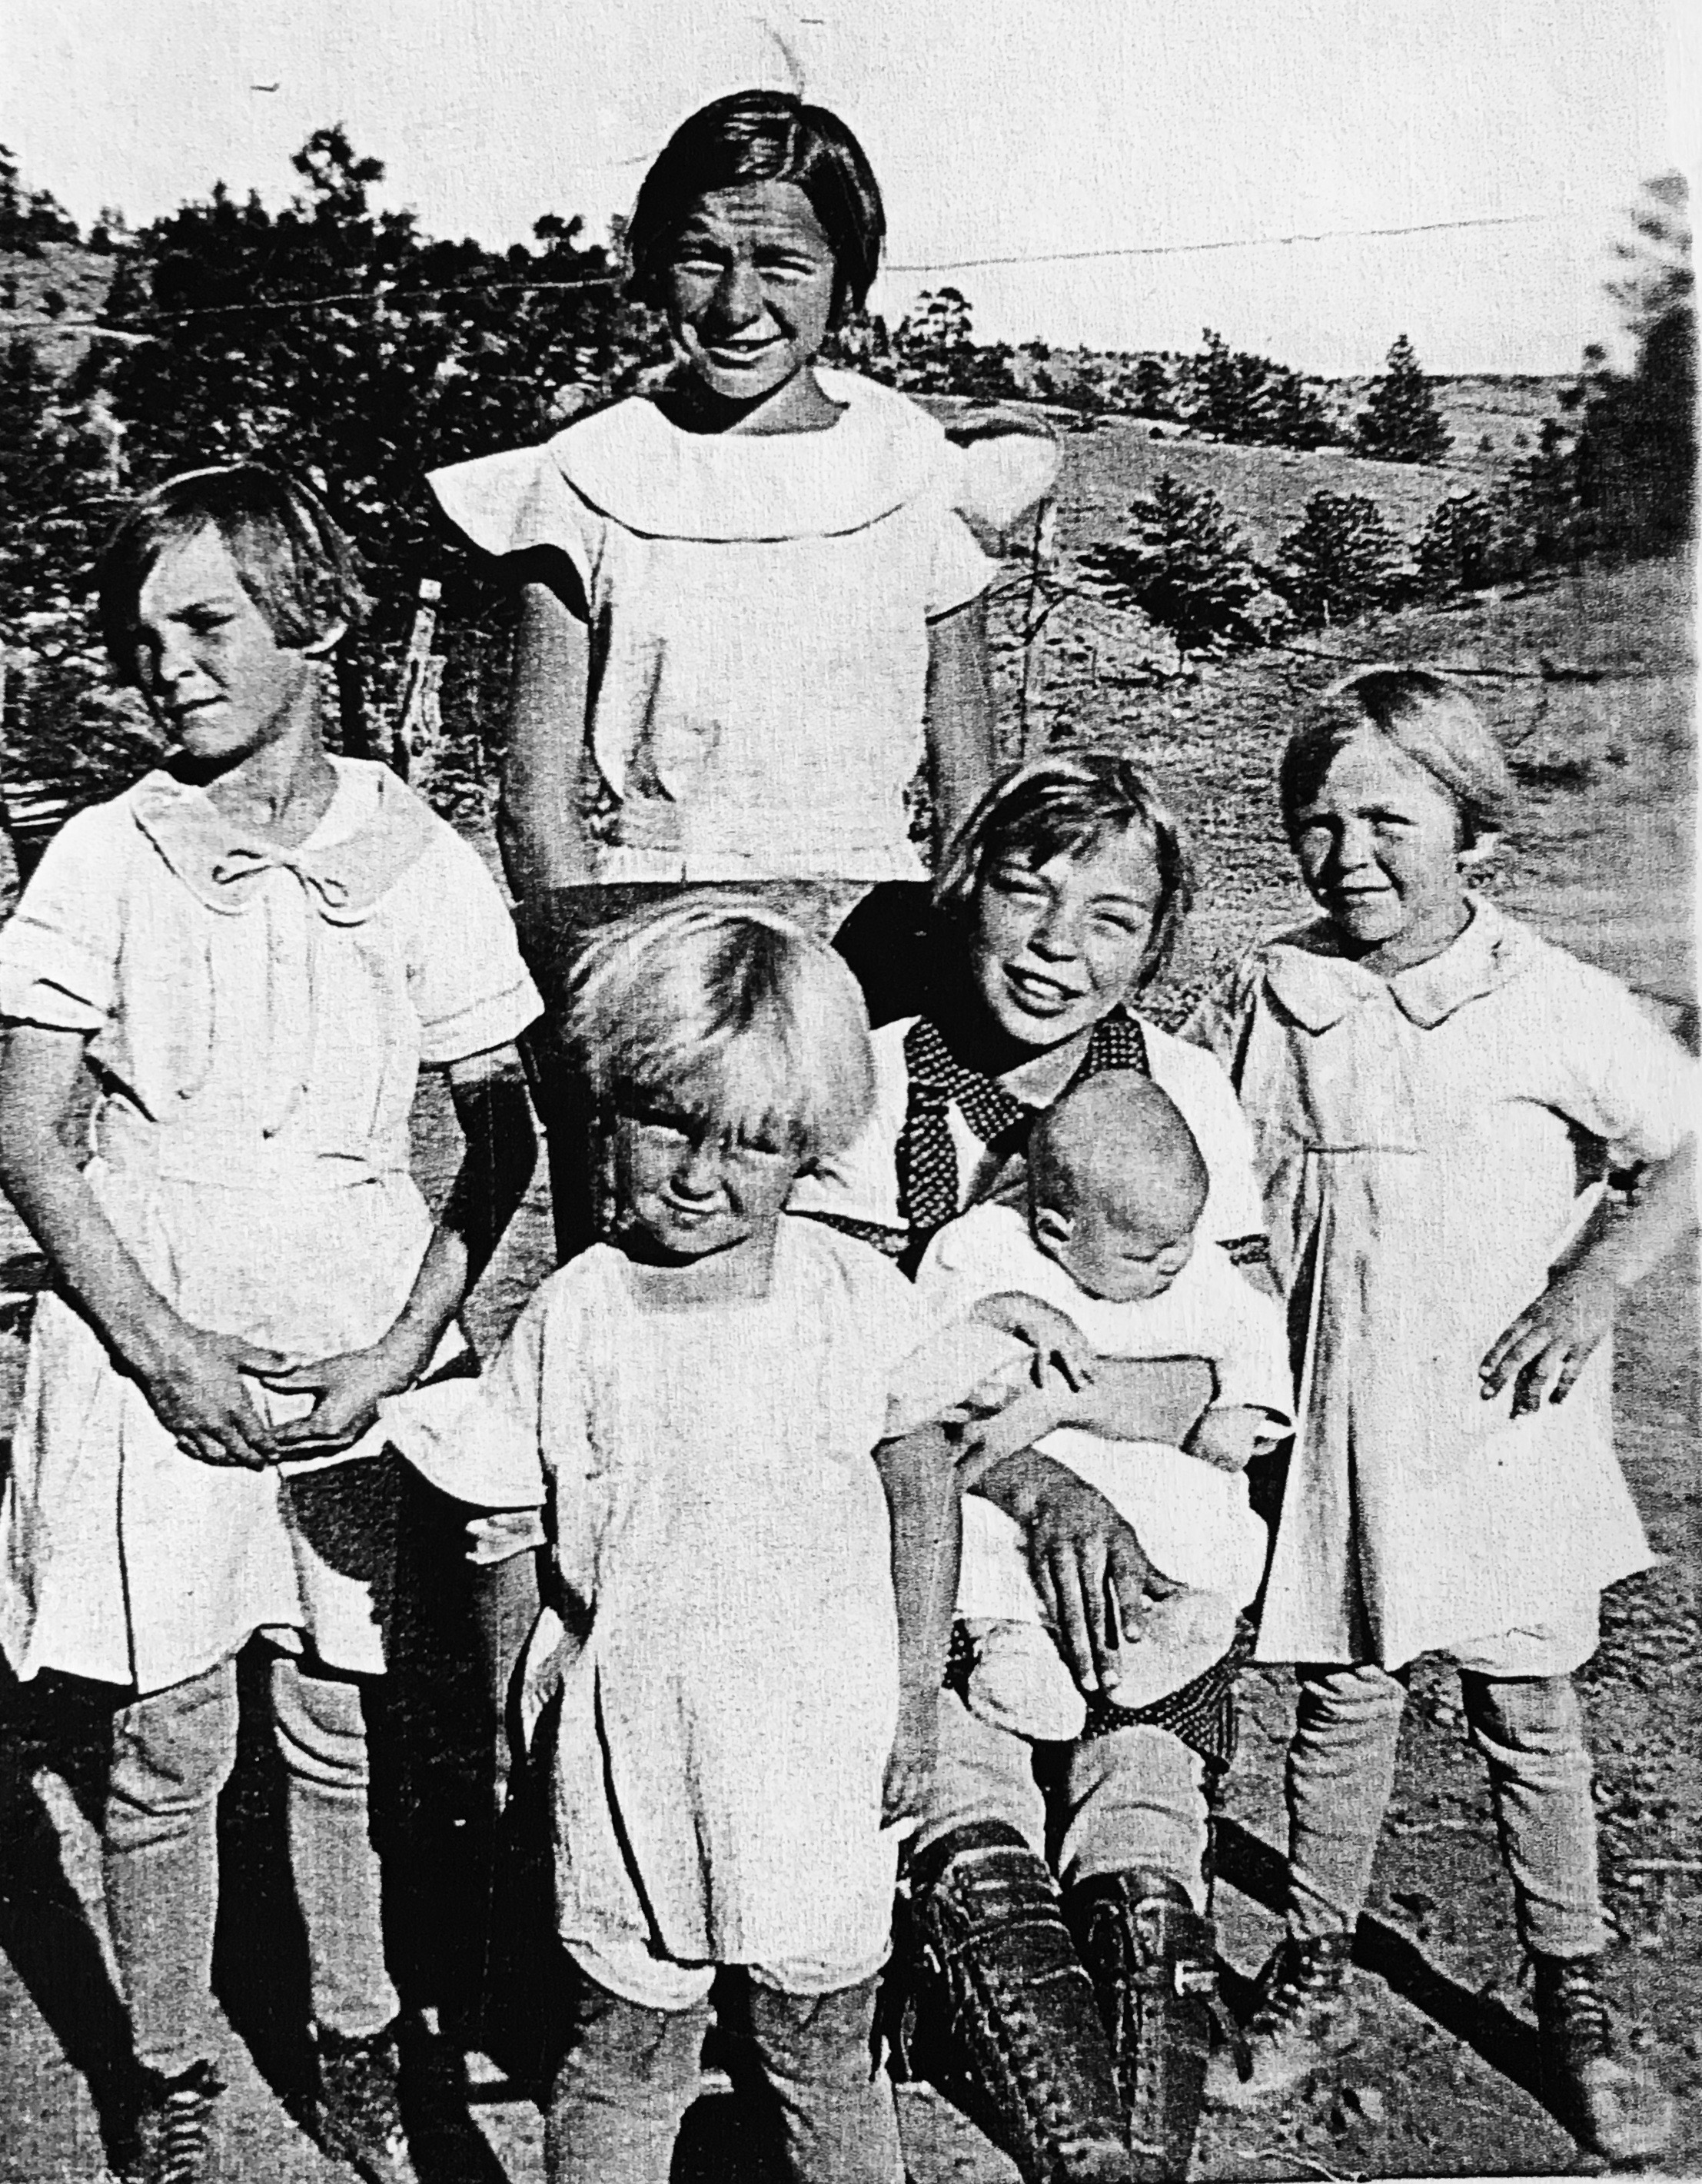 My mom is the baby being held by one of her siblings. My Aunt Mary is the little blonde with the sun in her eyes, standing front and center of everyone.